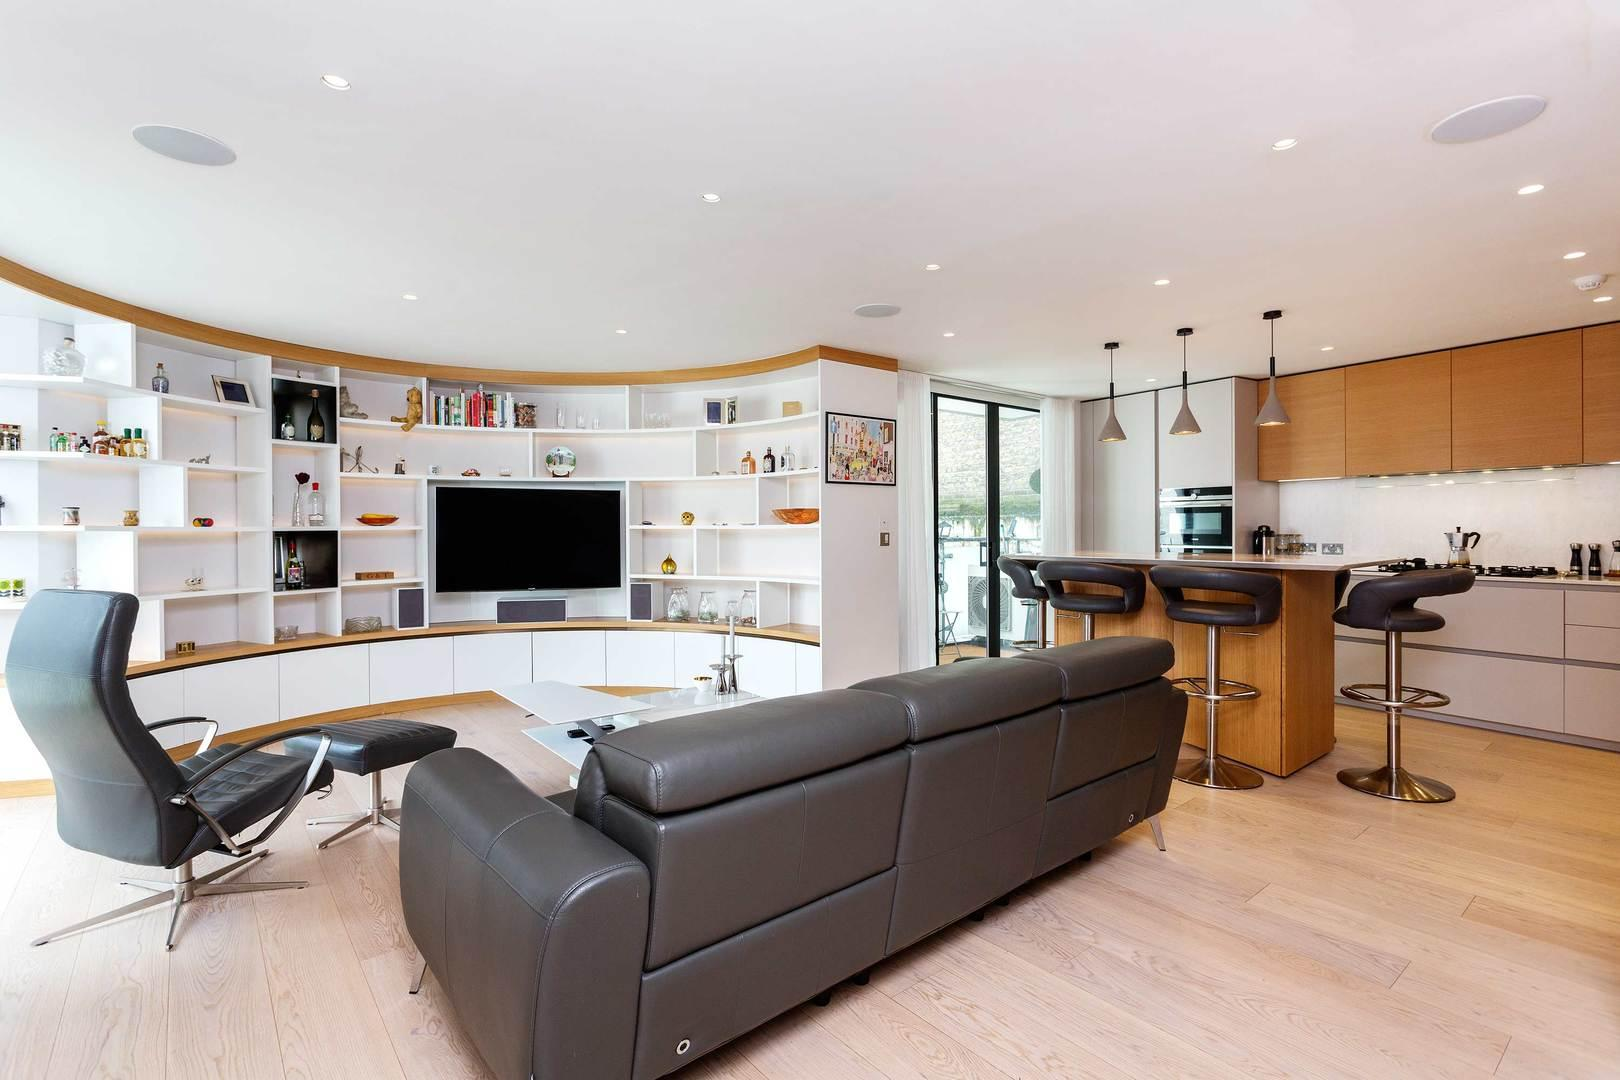 Property Image 1 - Chic Apartment in Amazing Central London Location